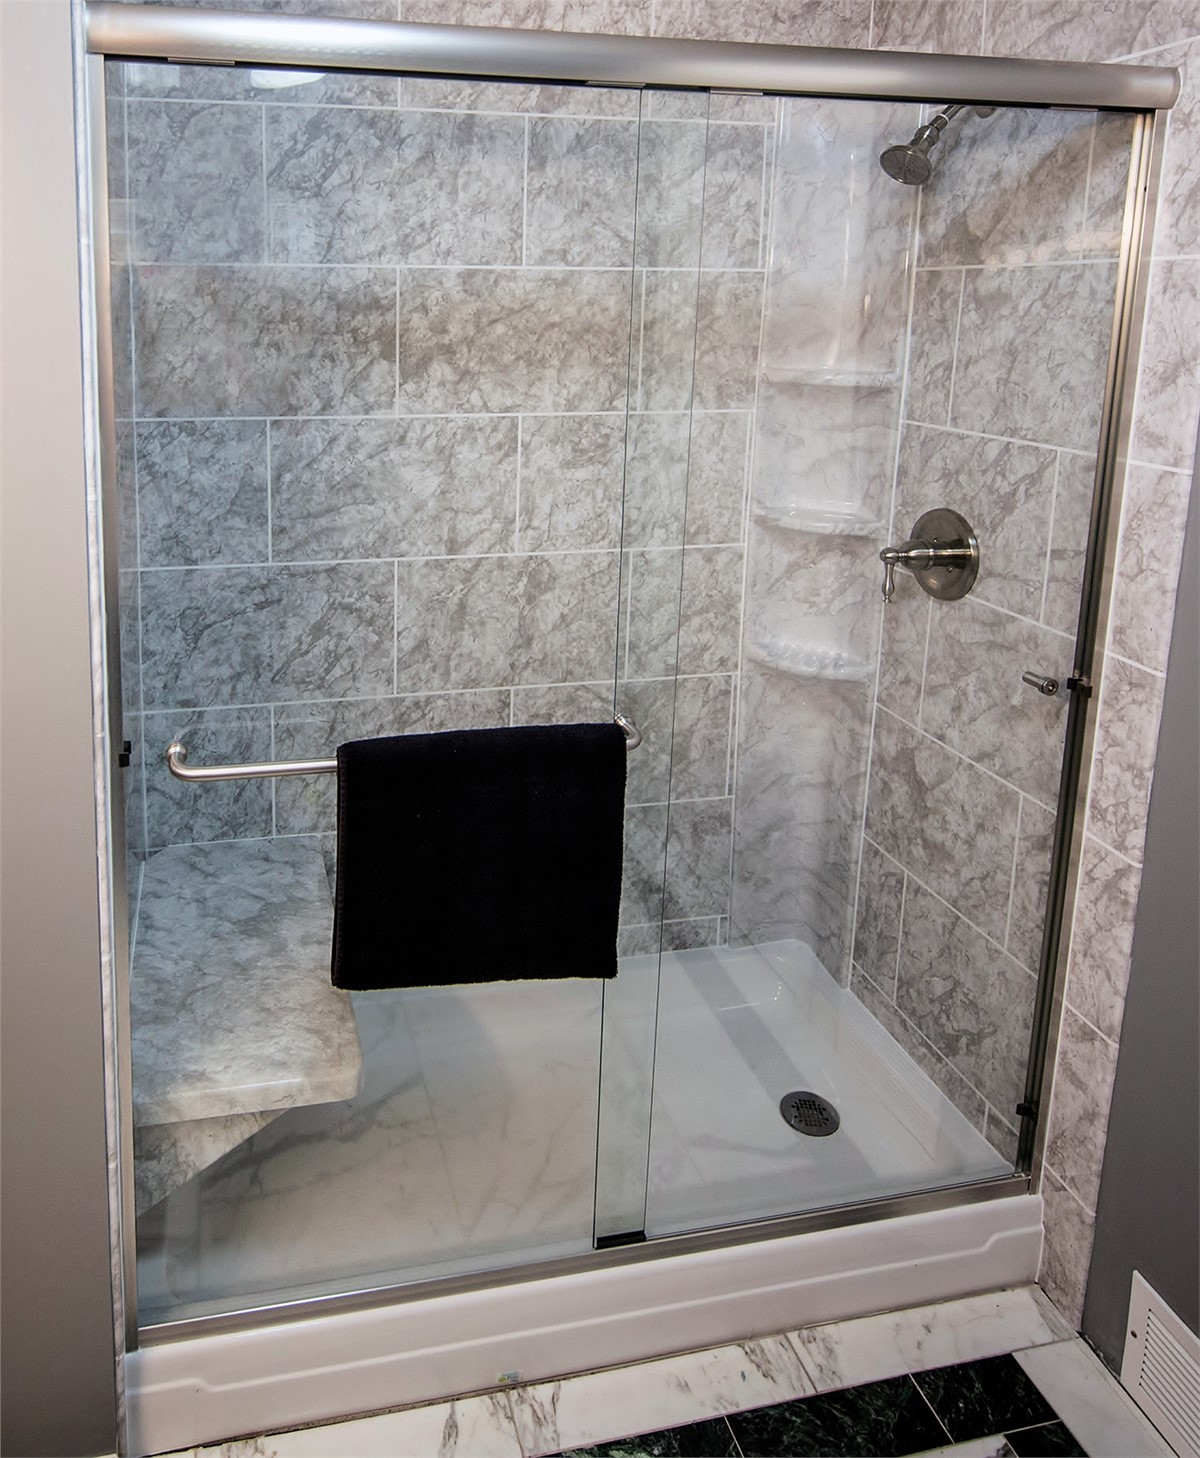 Bathroom Remodeling Schaumburg Bathroom Remodeling Matrix Bath - Bathroom remodeling schaumburg